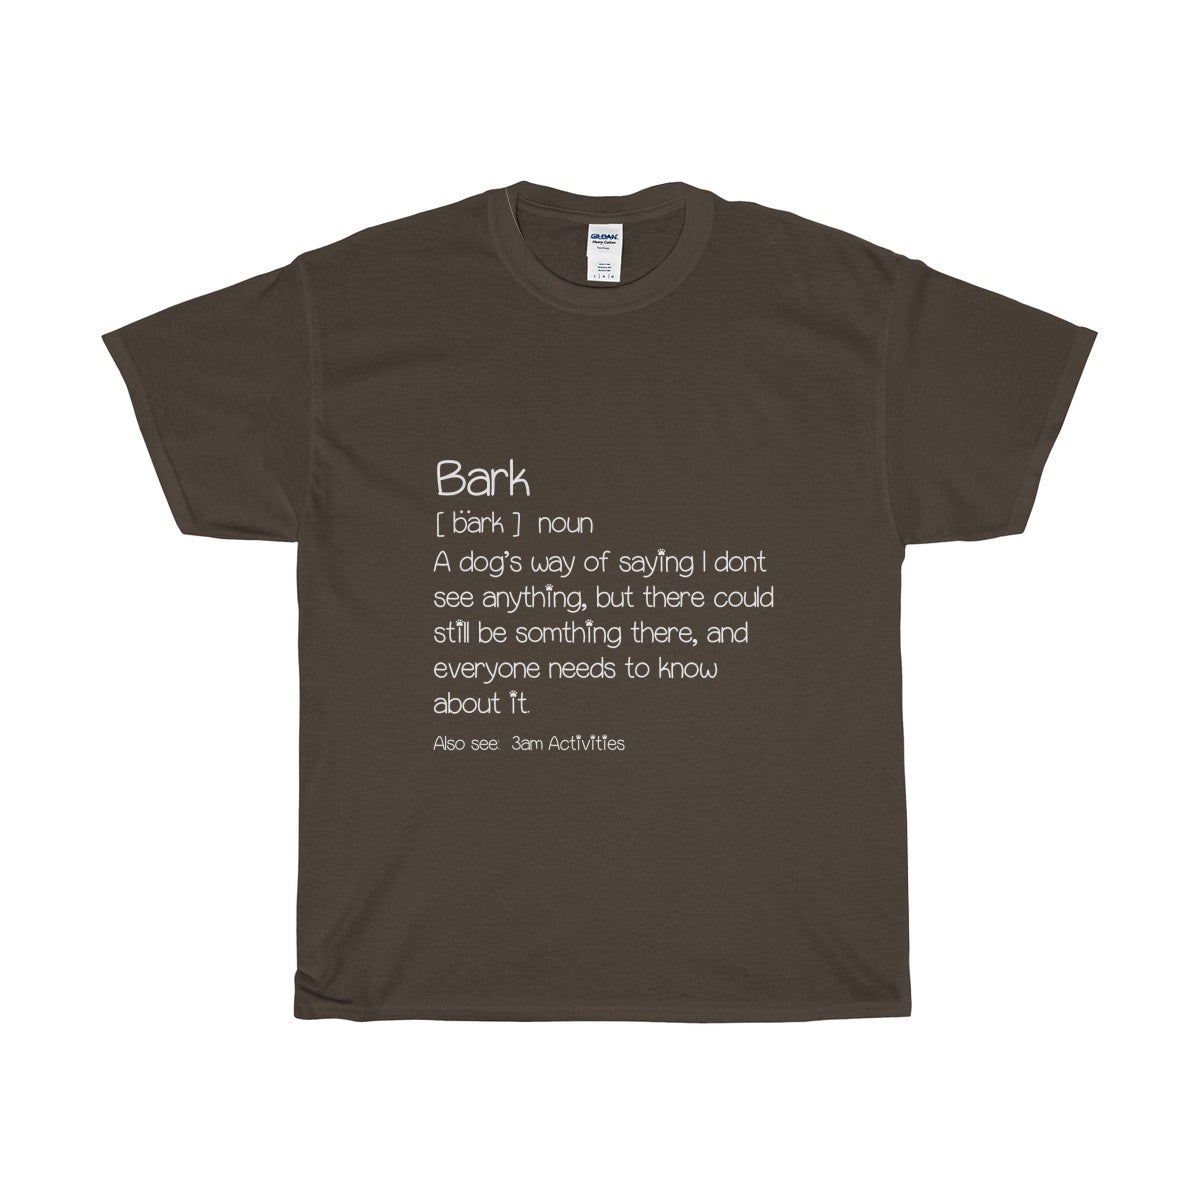 Men's Brown T-shirt with a funny definition of a bark